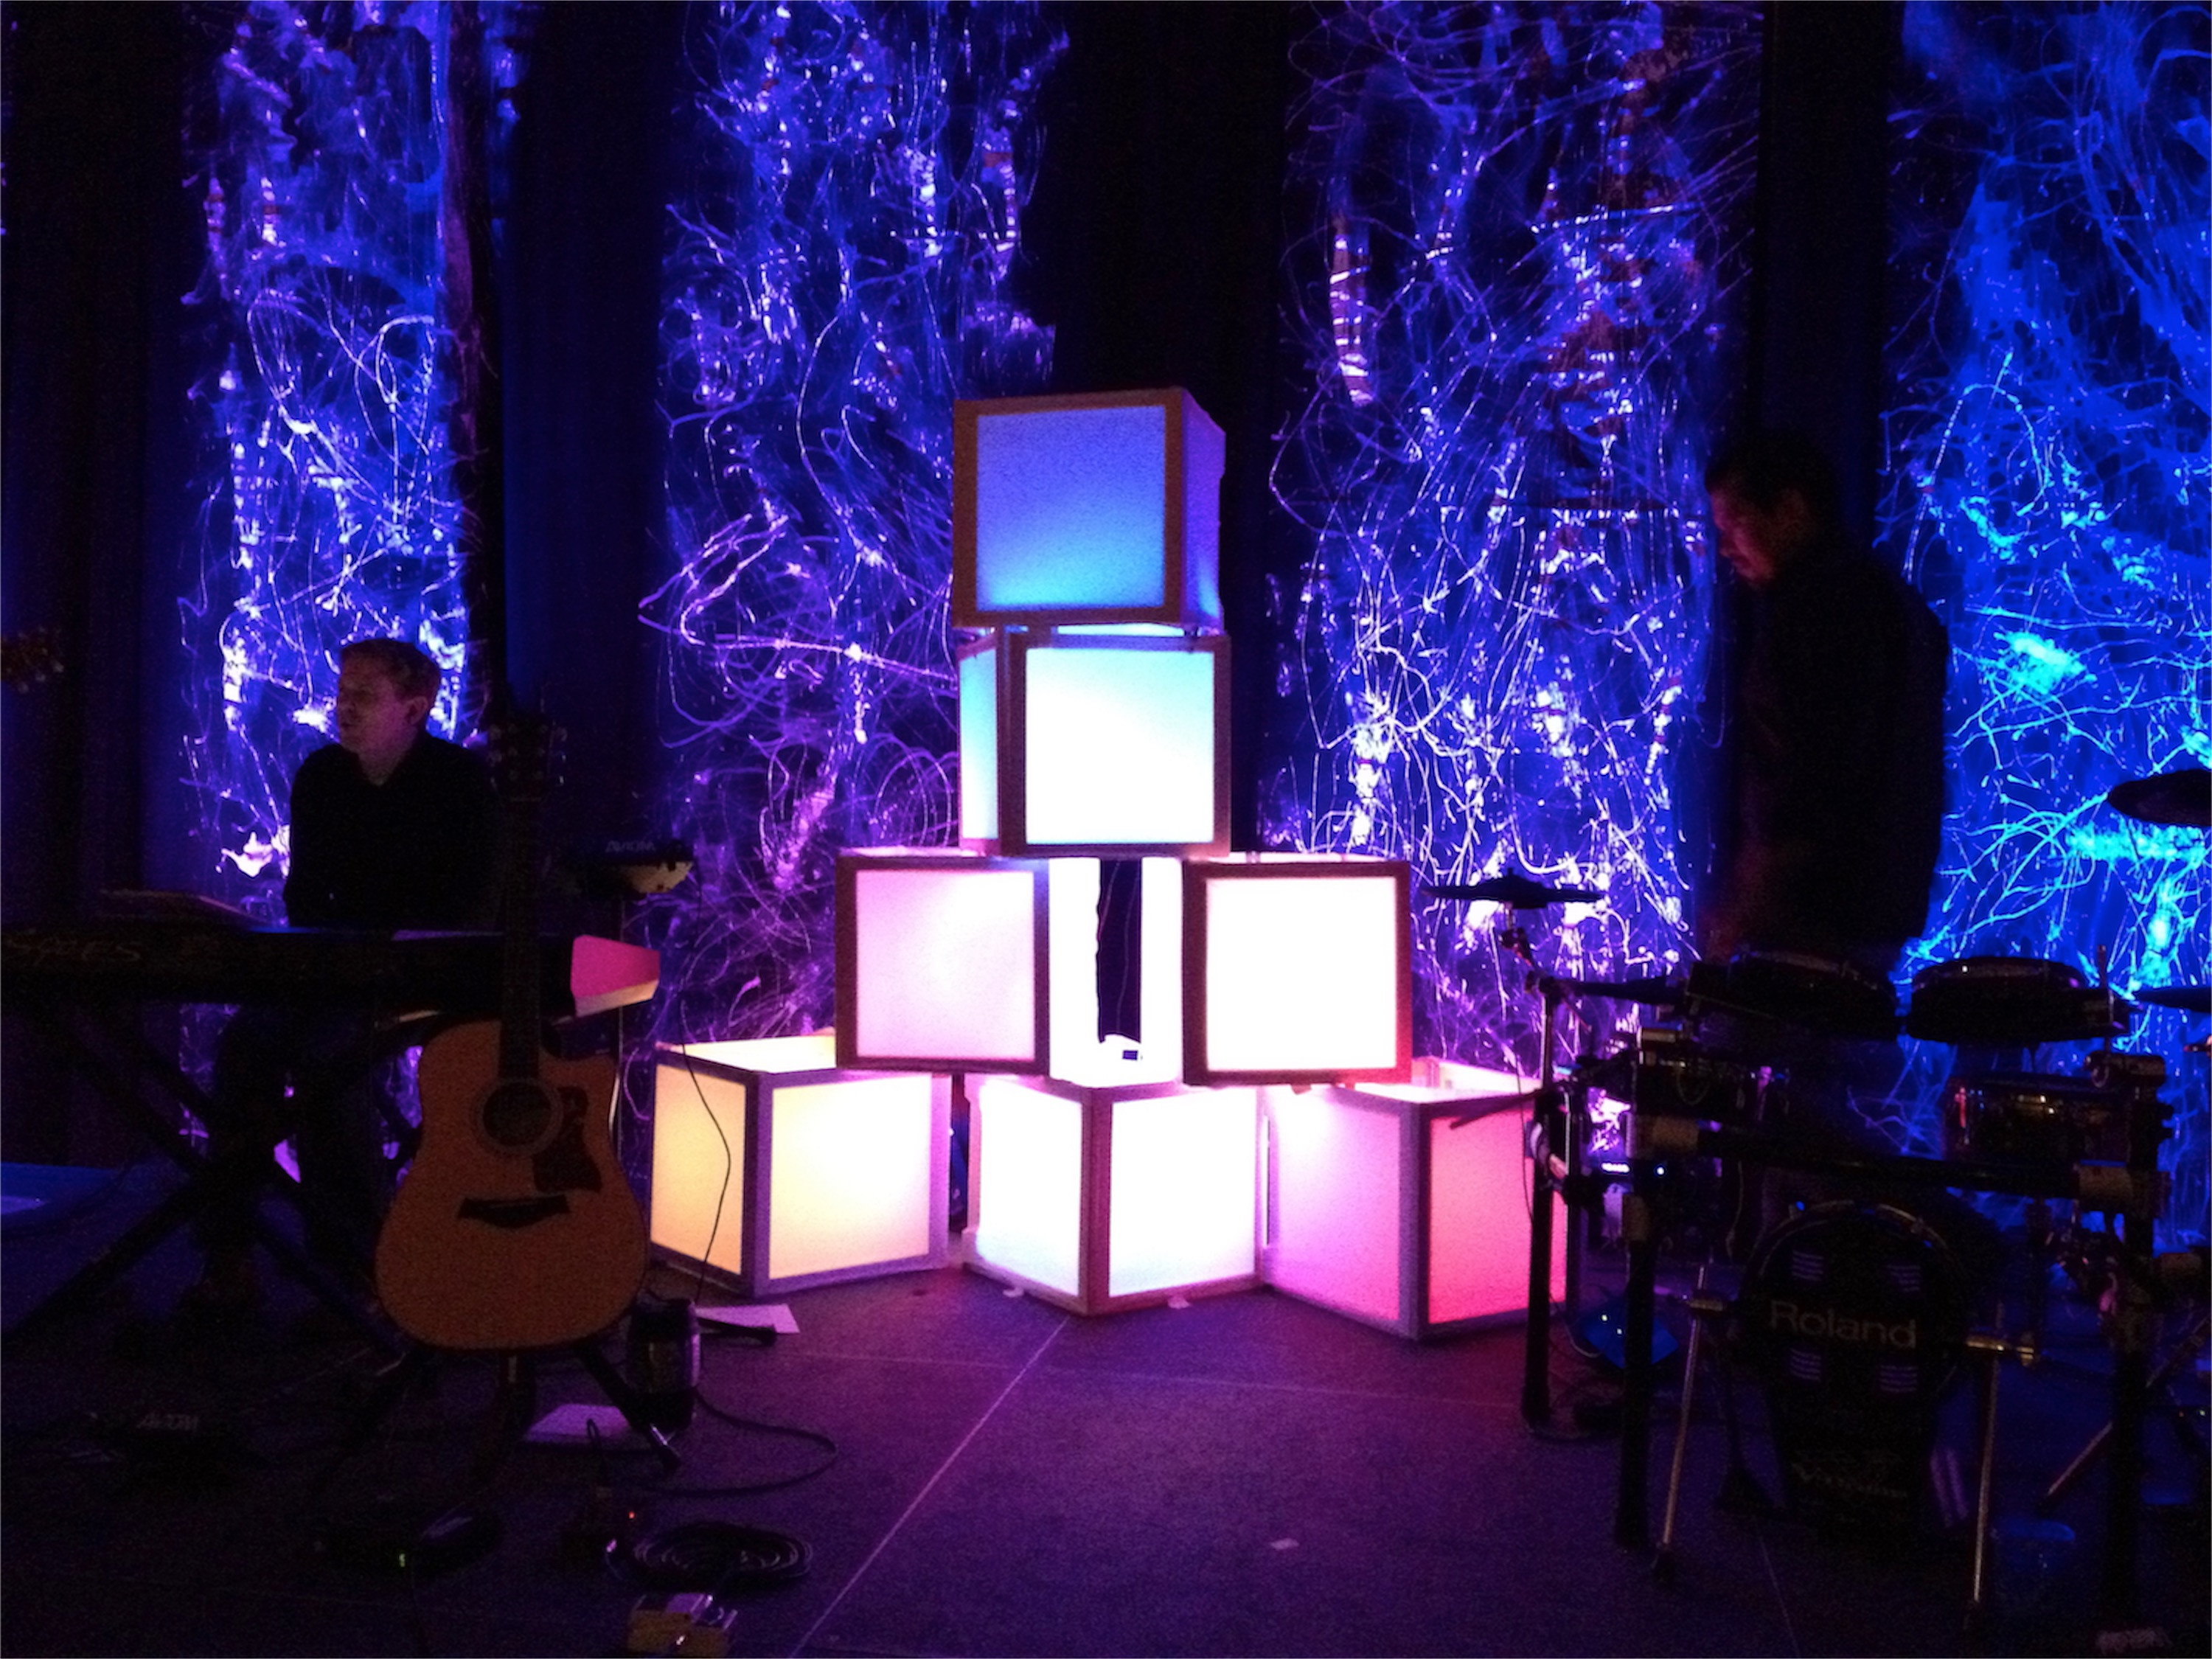 Best ideas about DIY Stage Lighting . Save or Pin Diy Church Stage Design Ideas Now.